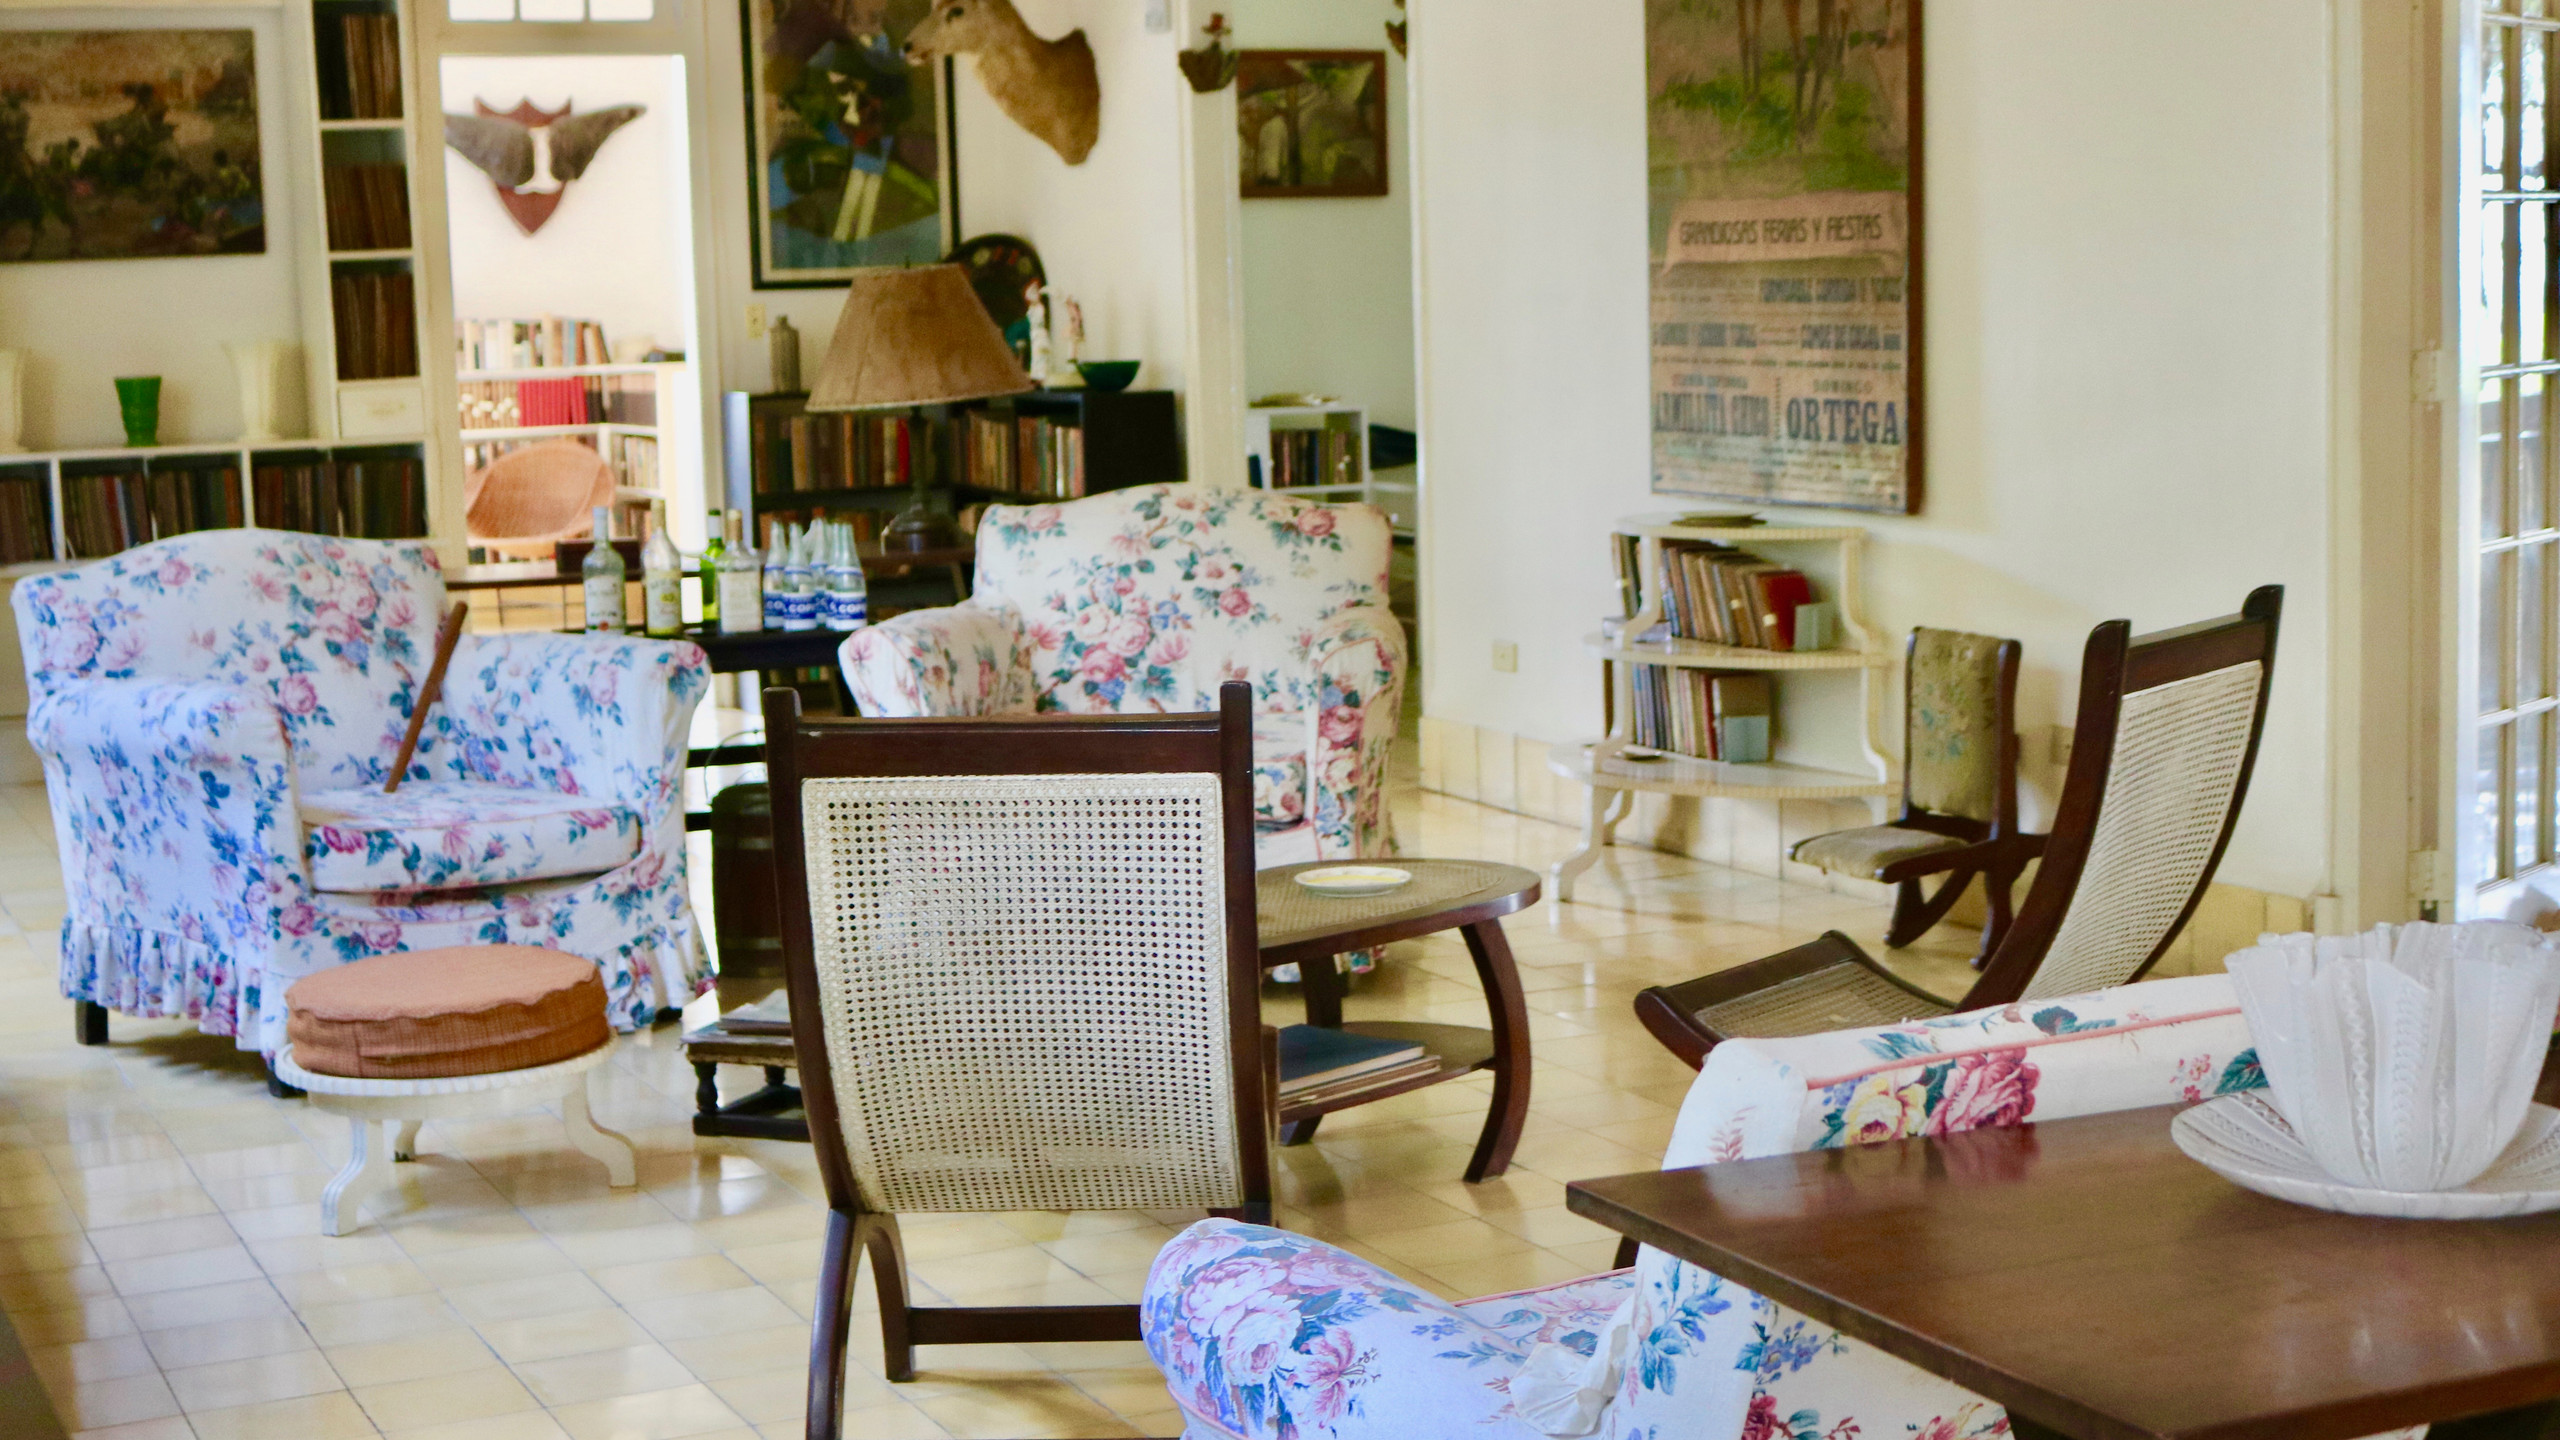 Living room with floral print furniture at Ernest Hemingway's Finca Vigia in Cuba.